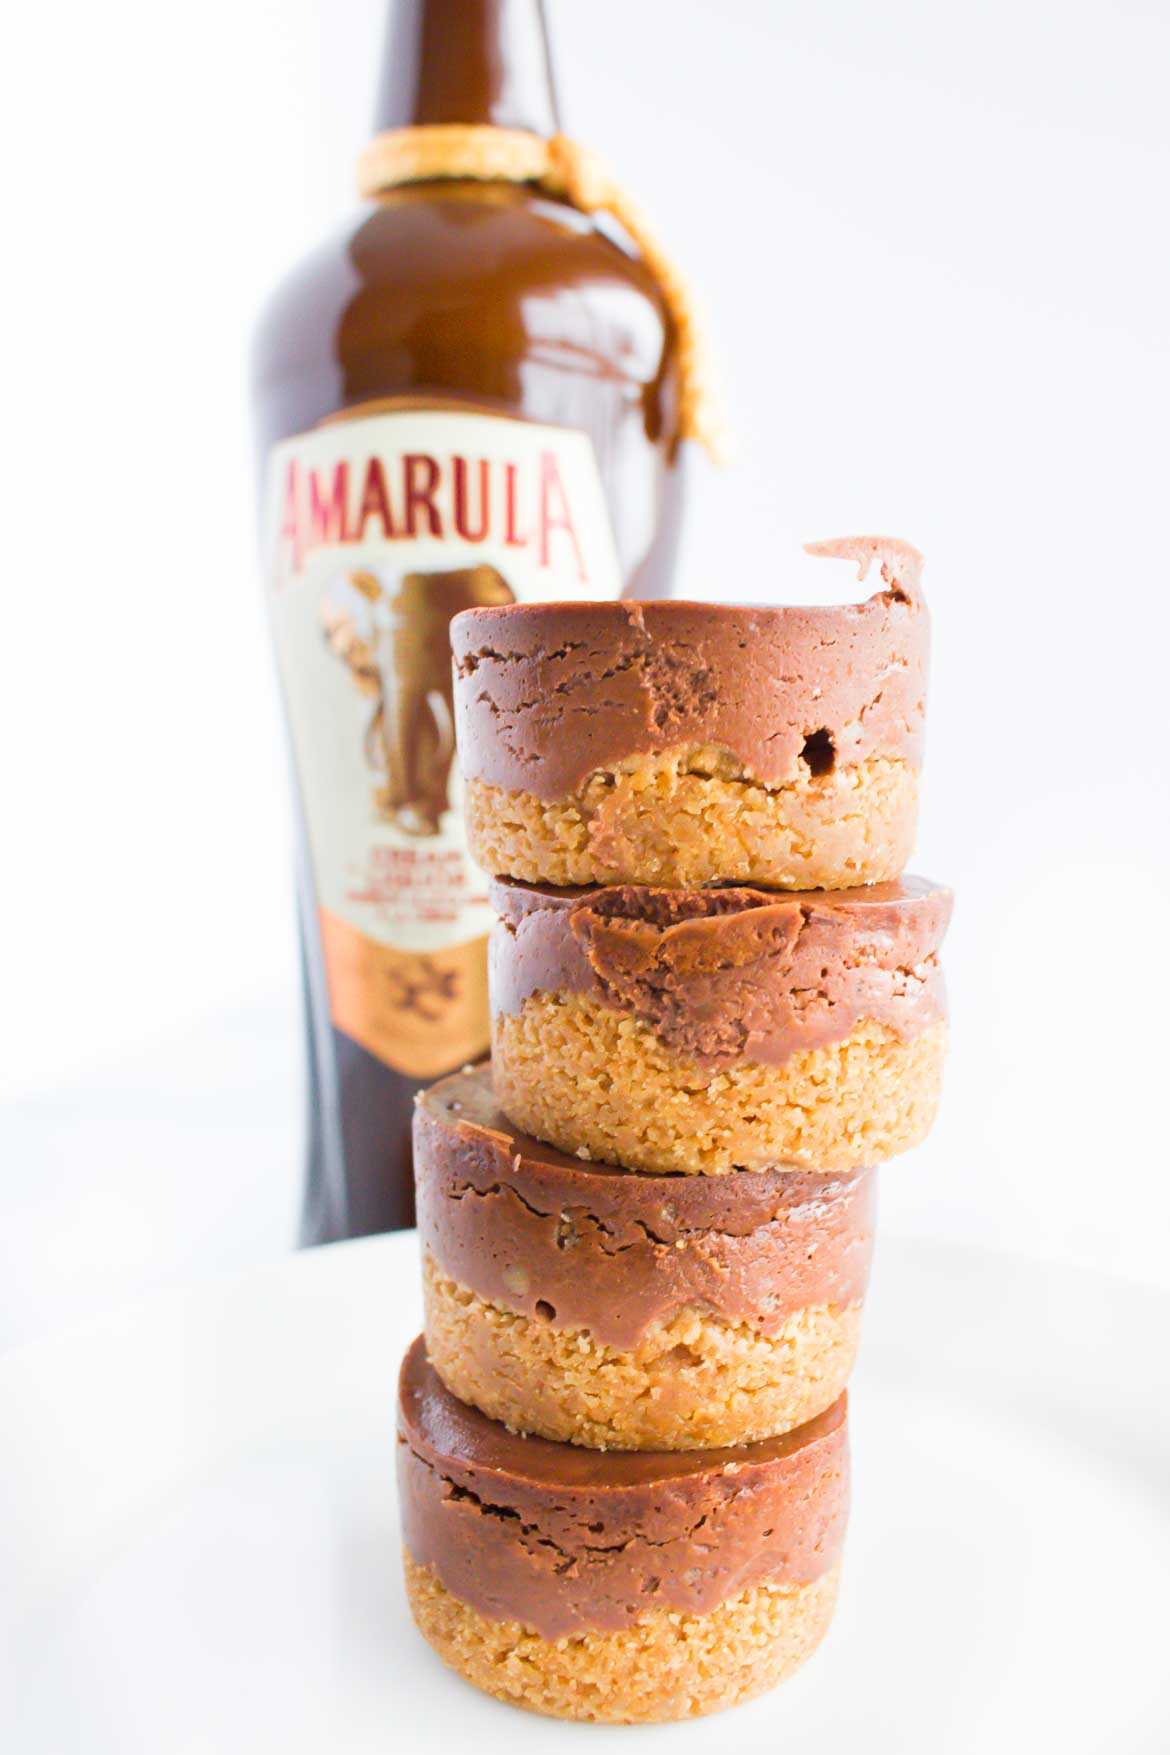 chocolate mini cheesecakes with graham cracker crust and Amarula Creme liqueur